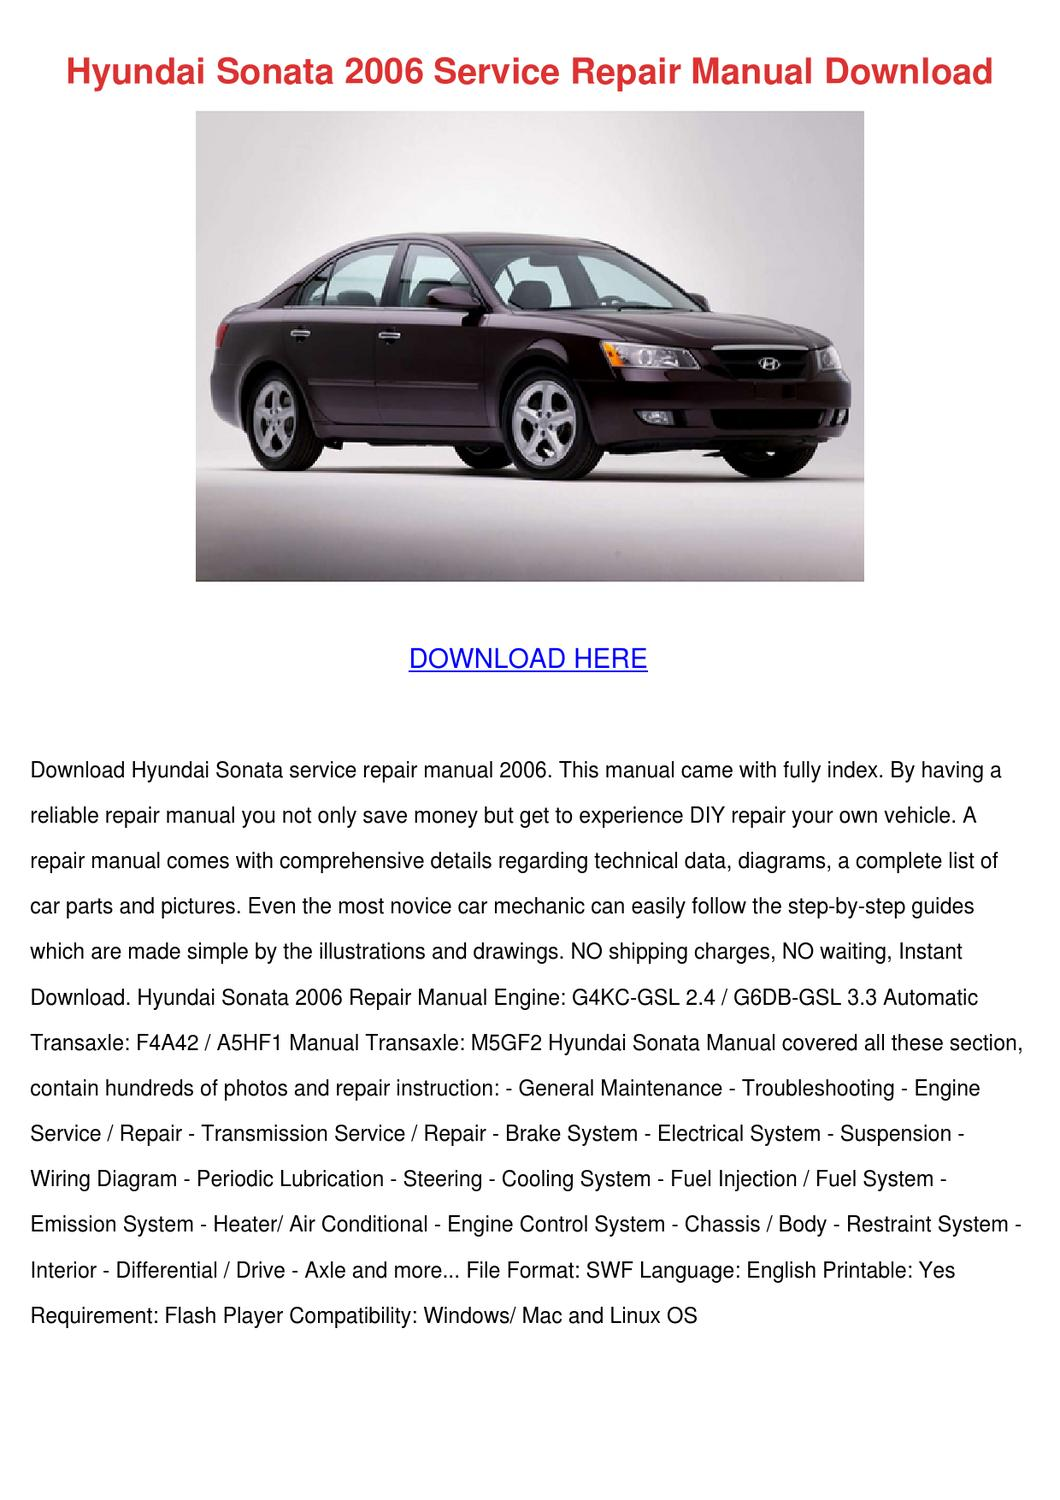 hyundai sonata repair manual pdf